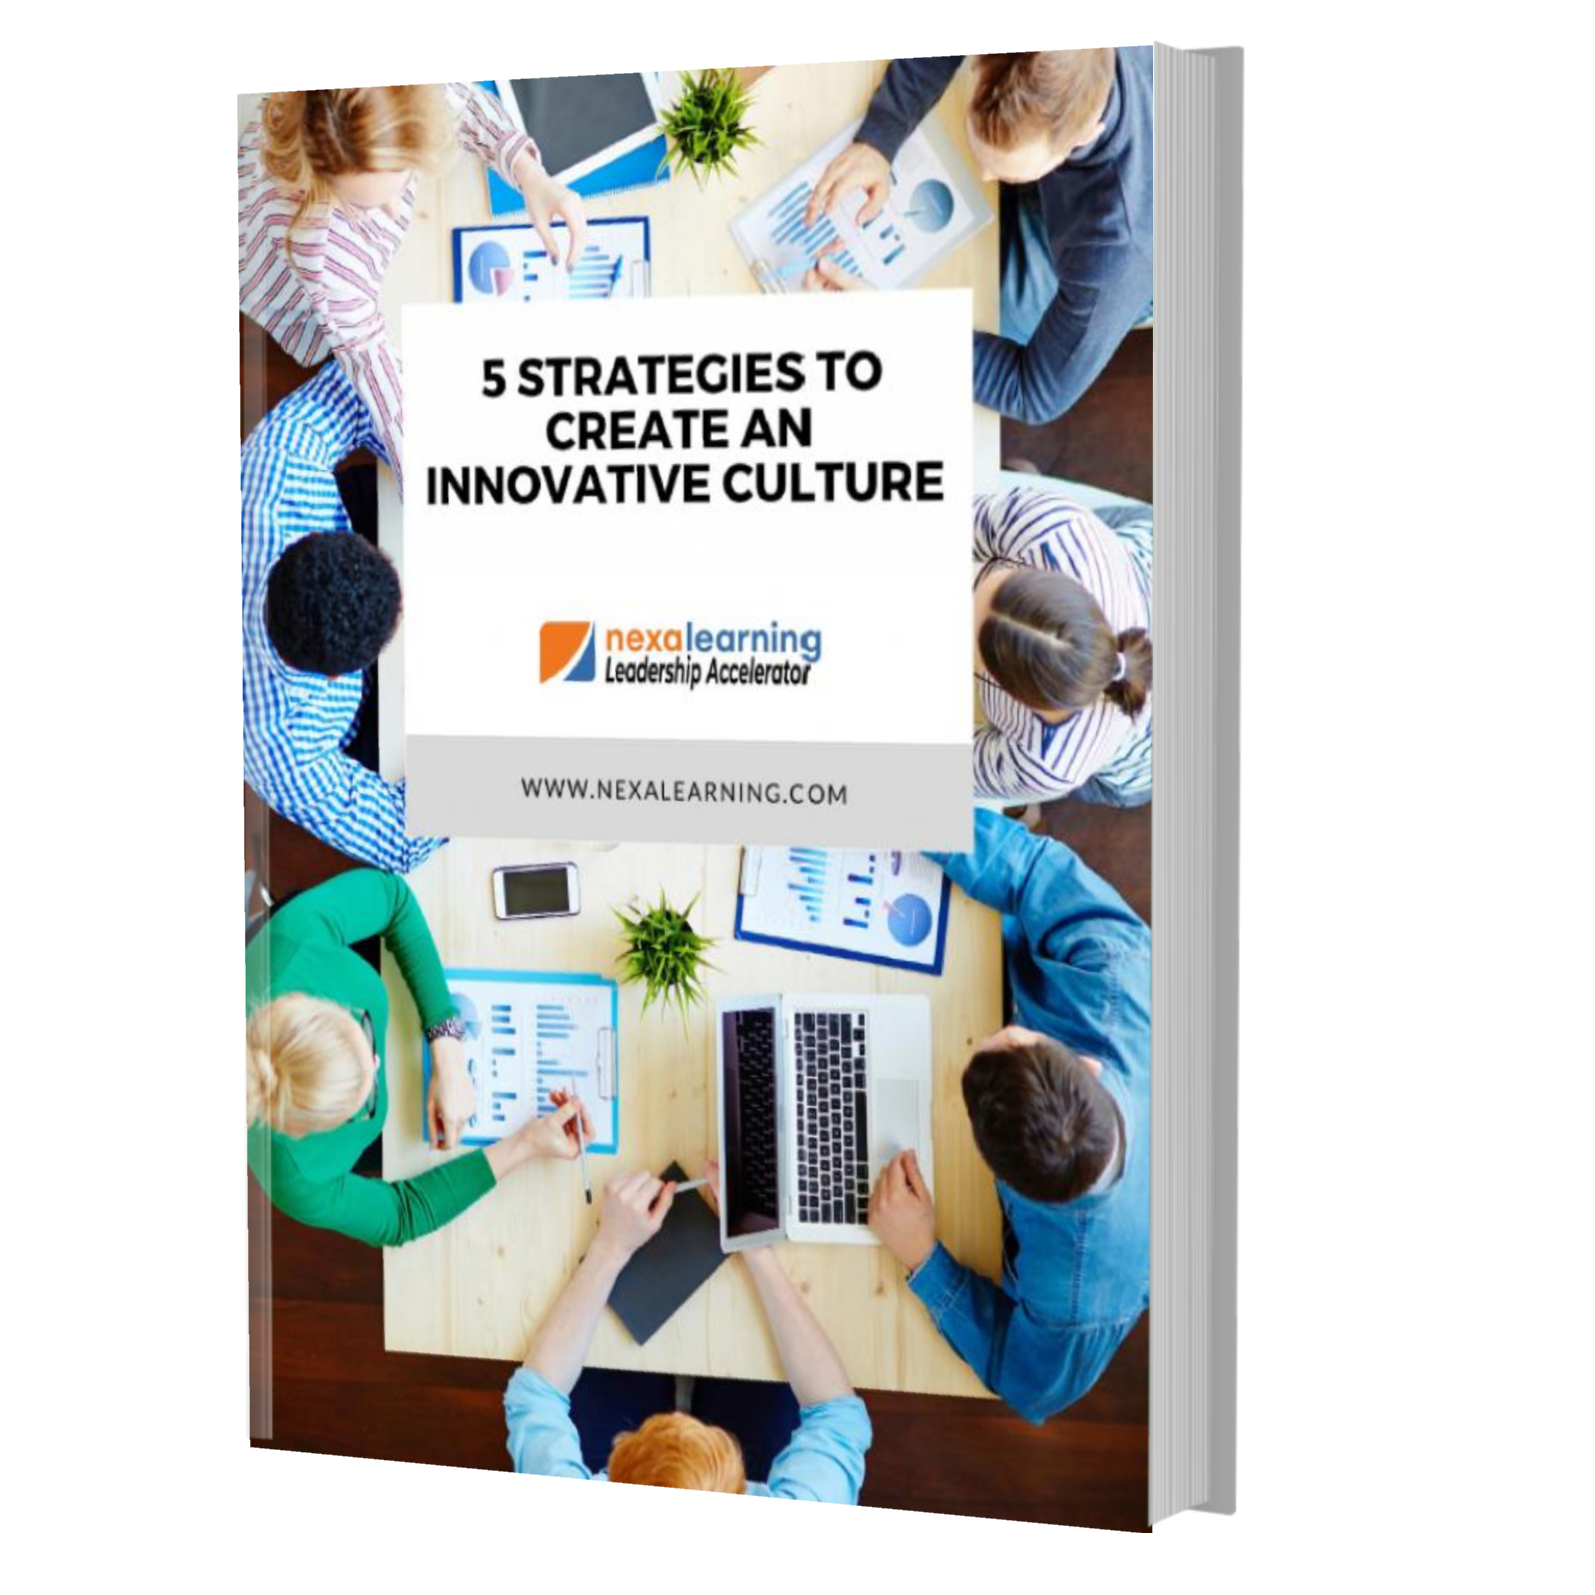 5 Strategies to Create an Innovative Culture - NexaLearning - 2020